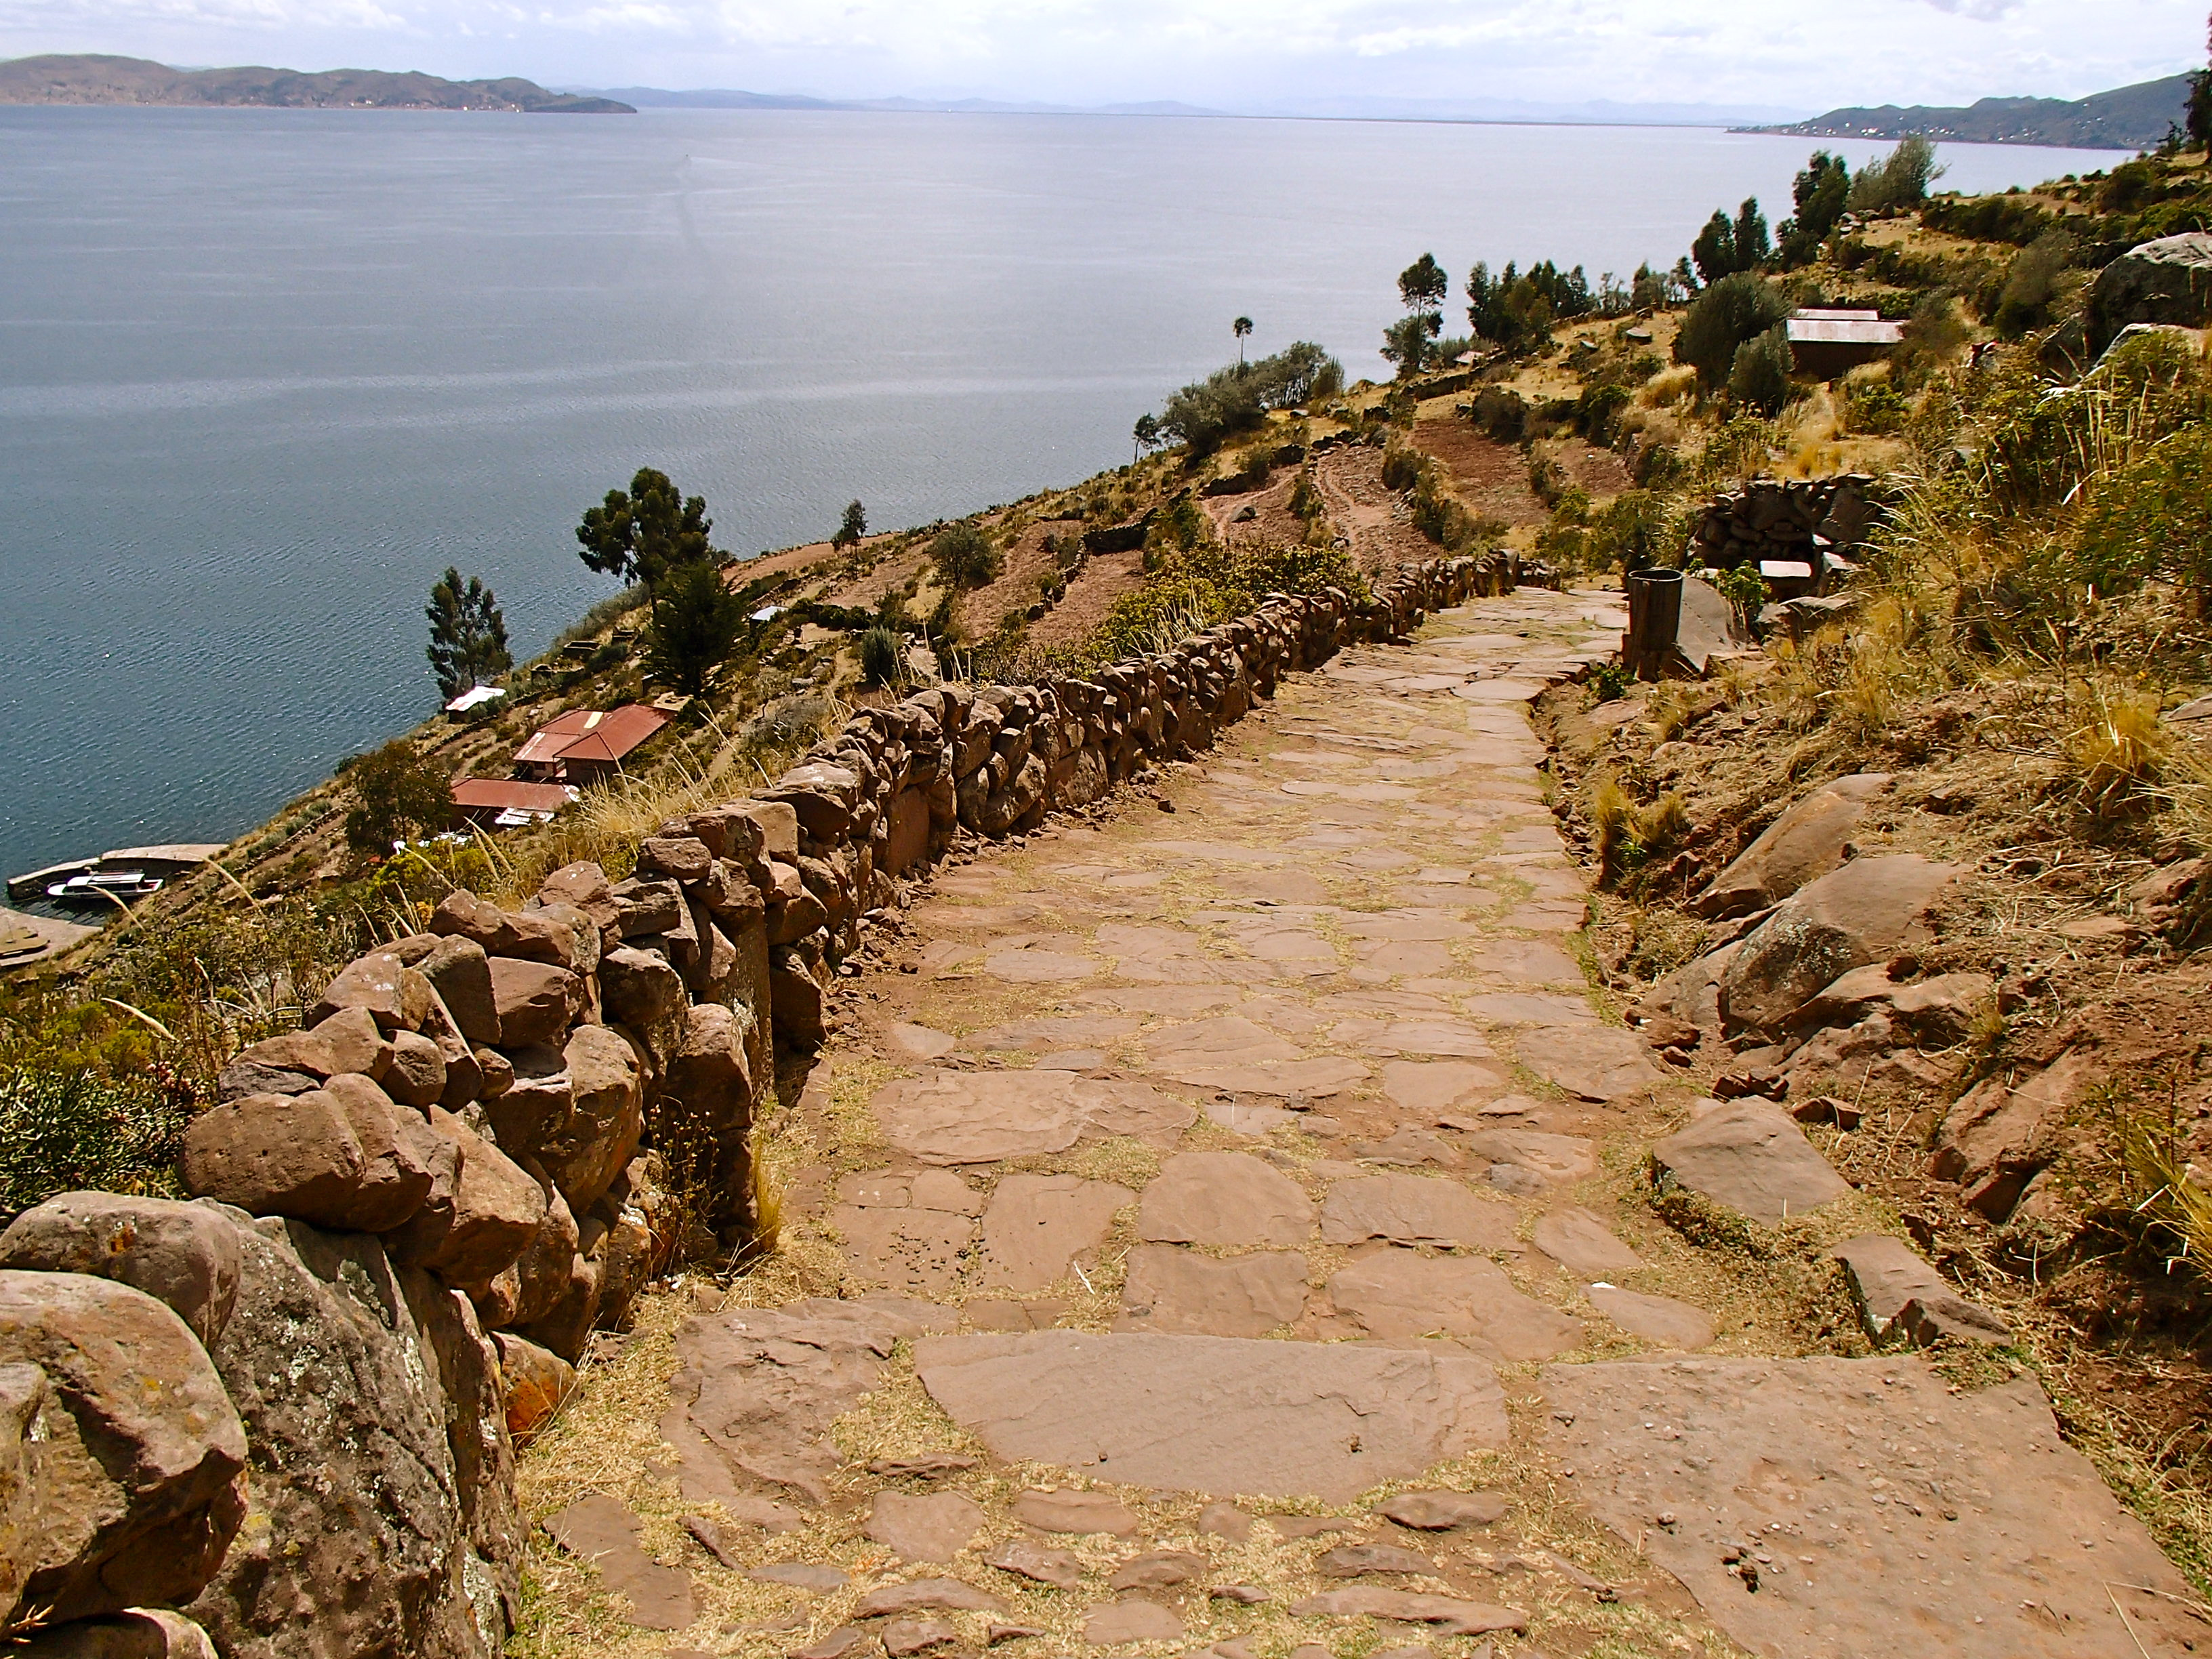 peru travel blog best things to see in peru where to go in peru what to do in lake titicaca